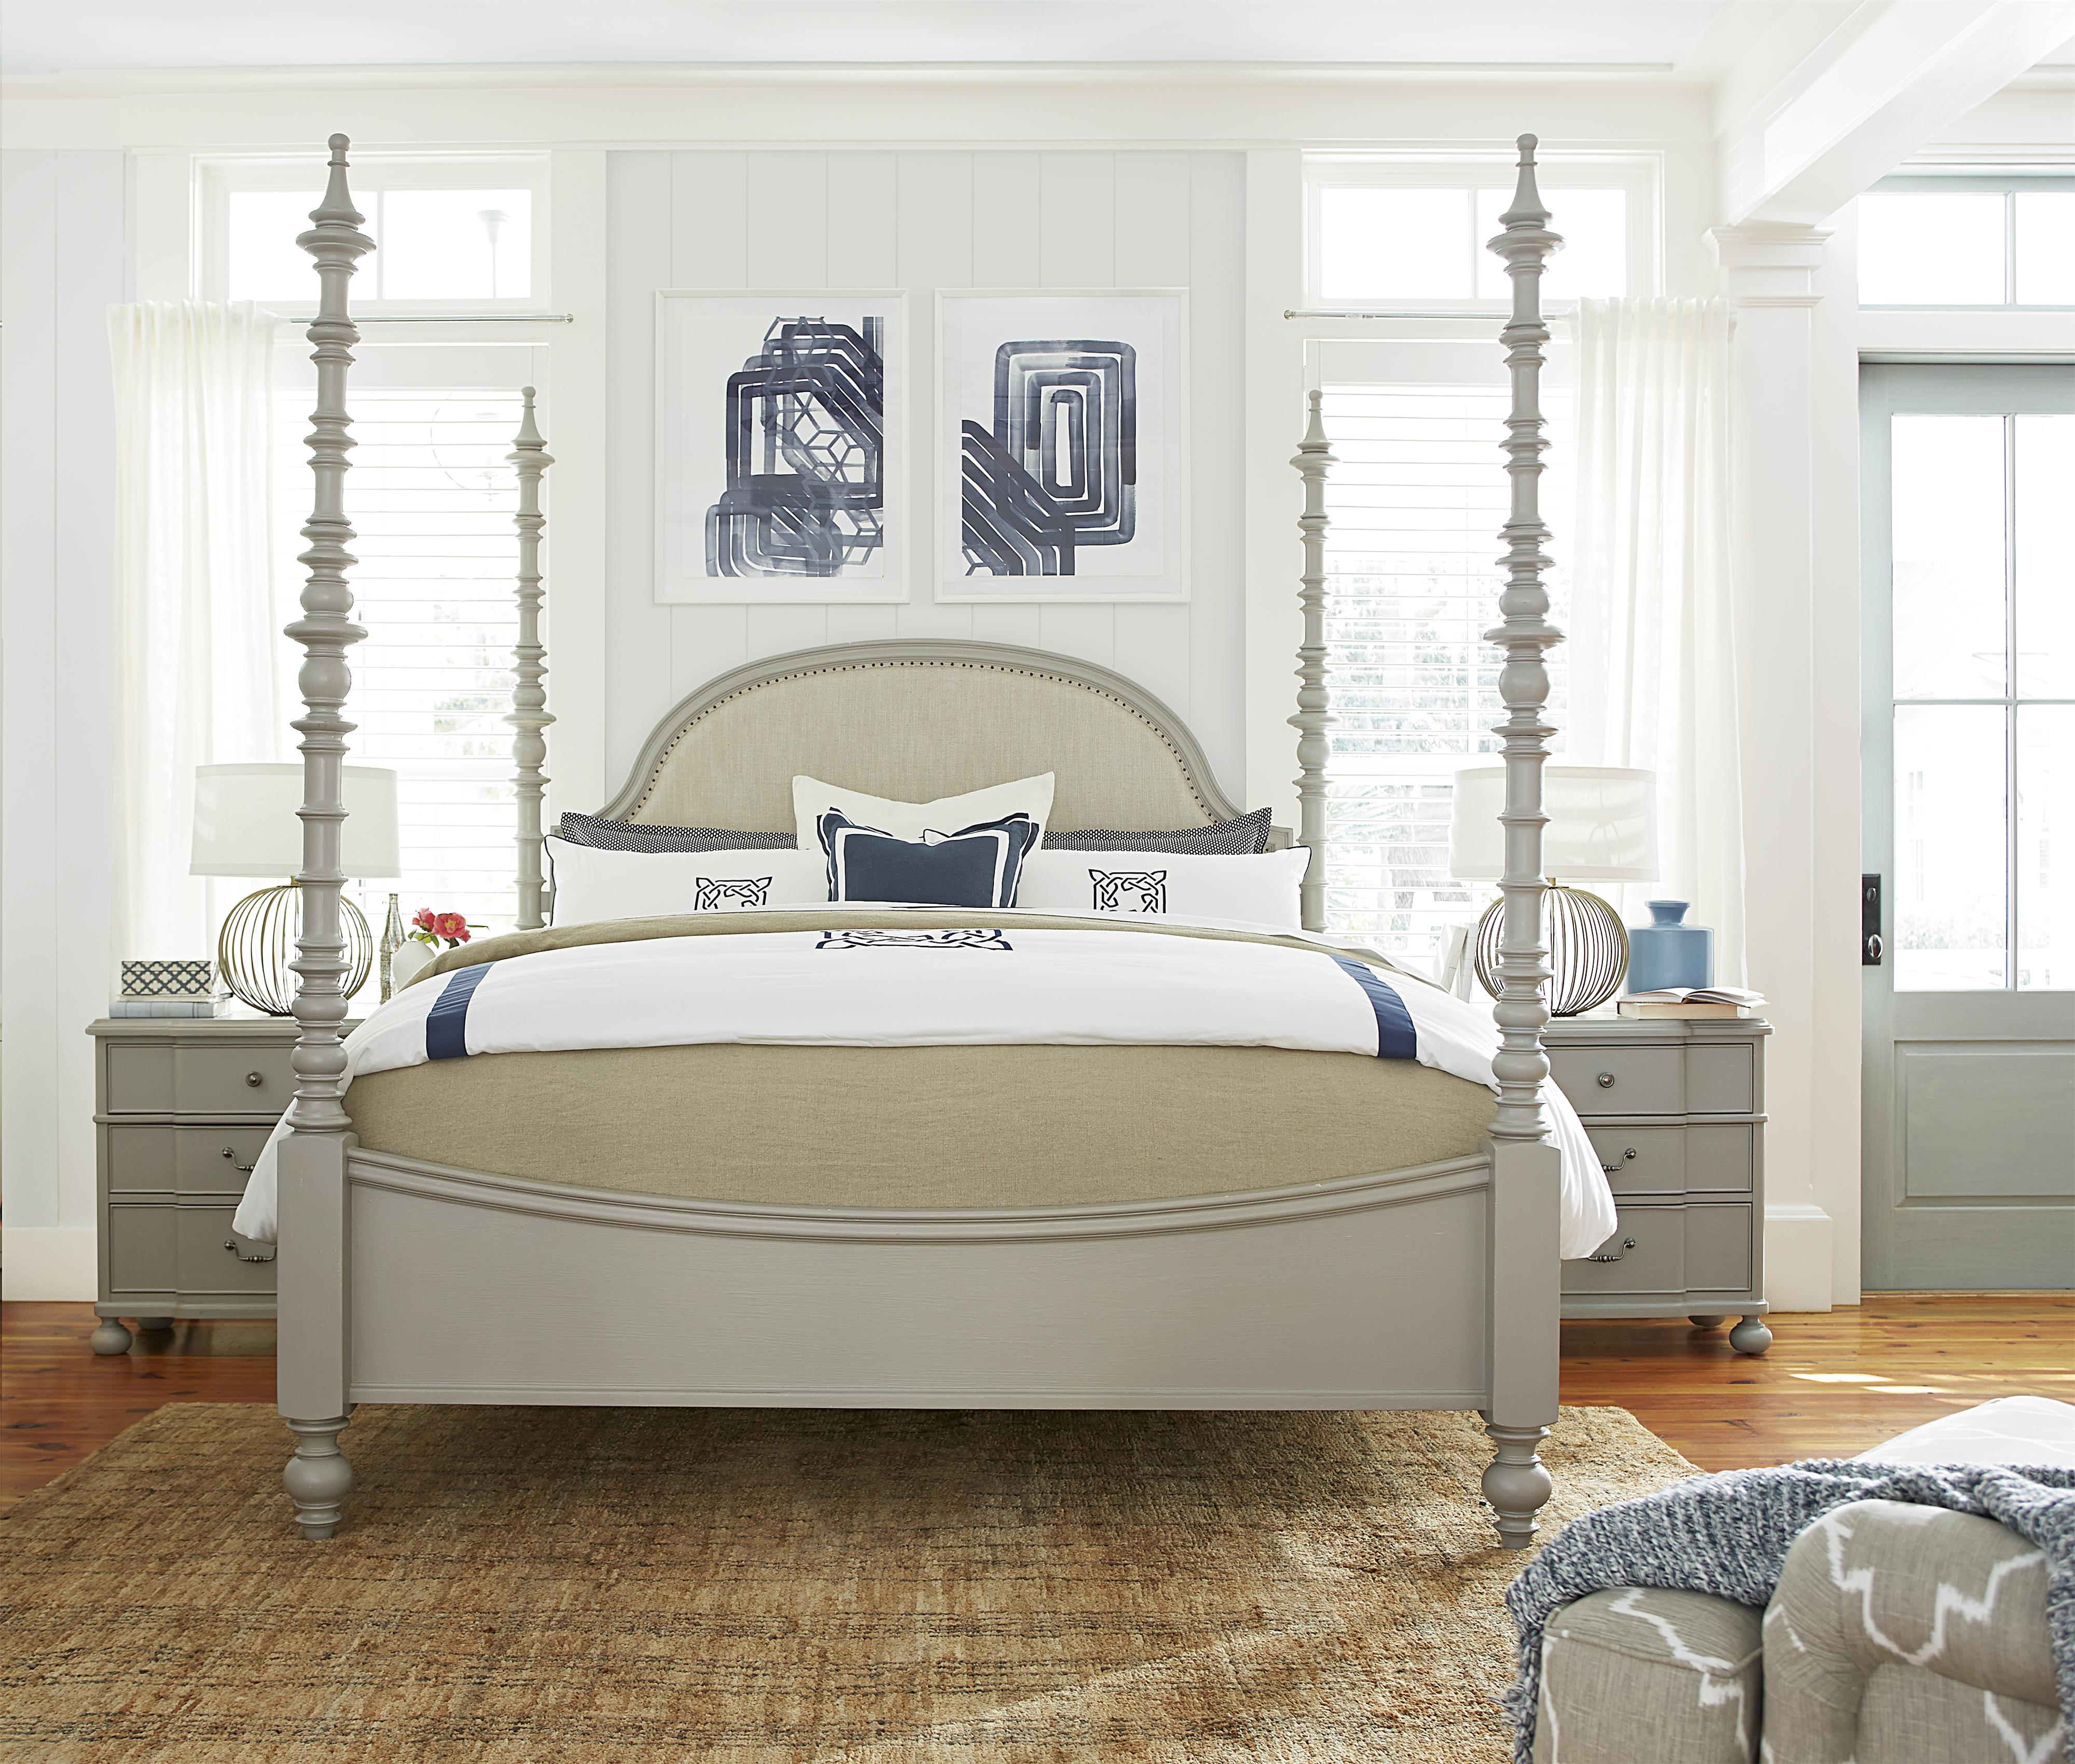 Paula Deen by Universal Dogwood King Bedroom Group - Item Number: 599 K Bedroom Group 2